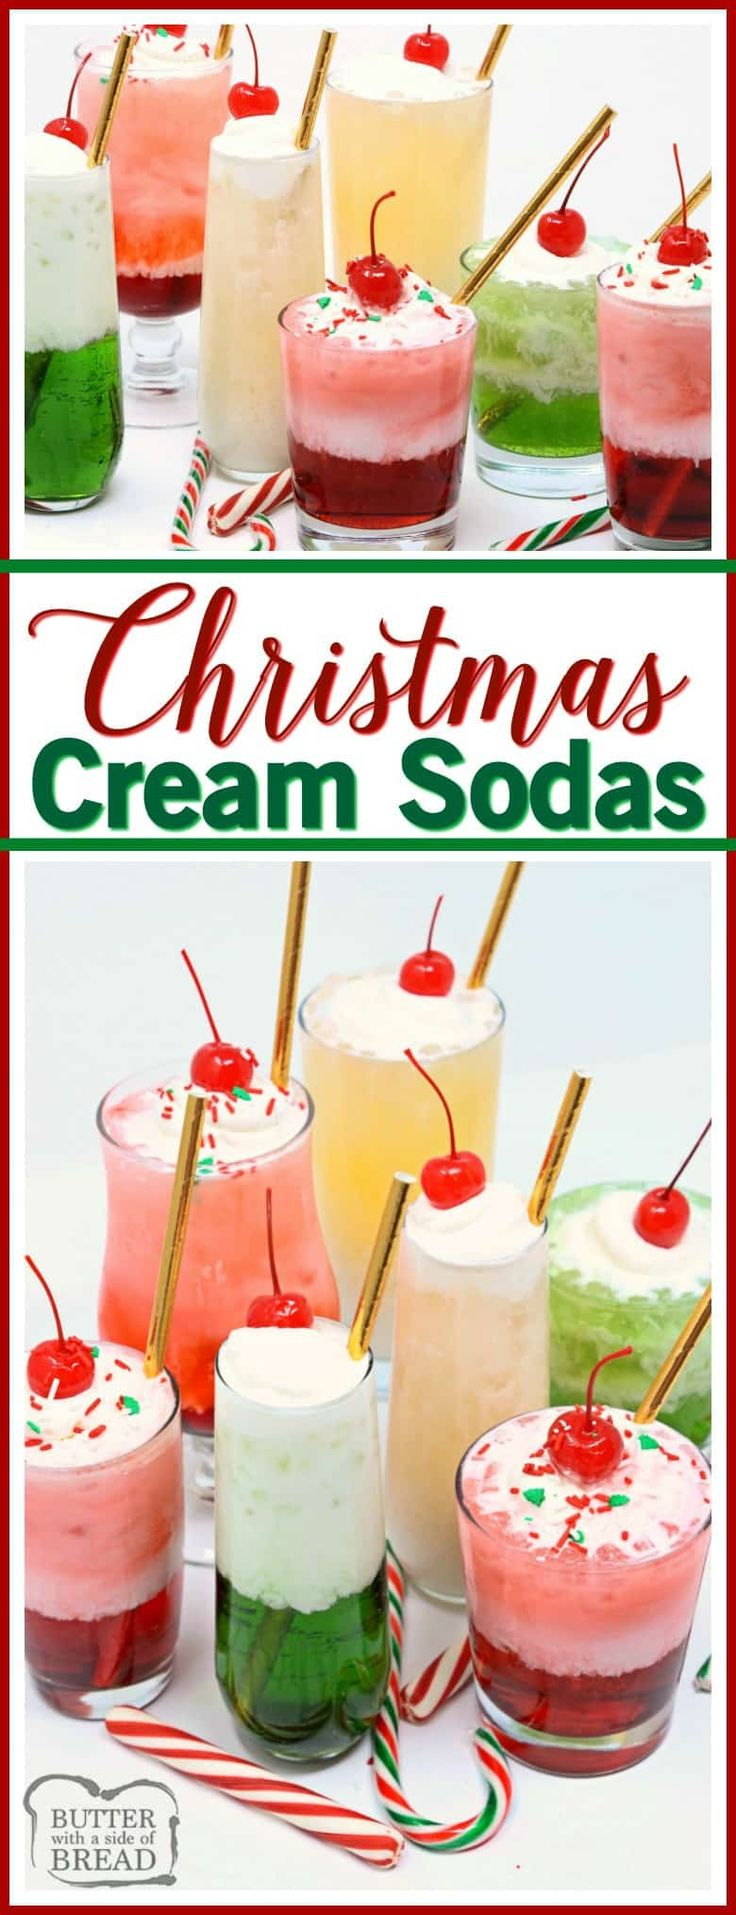 Christmas Cream Sodas made with sweet syrups, cream & club soda are a delicious & festive addition to any holiday party!